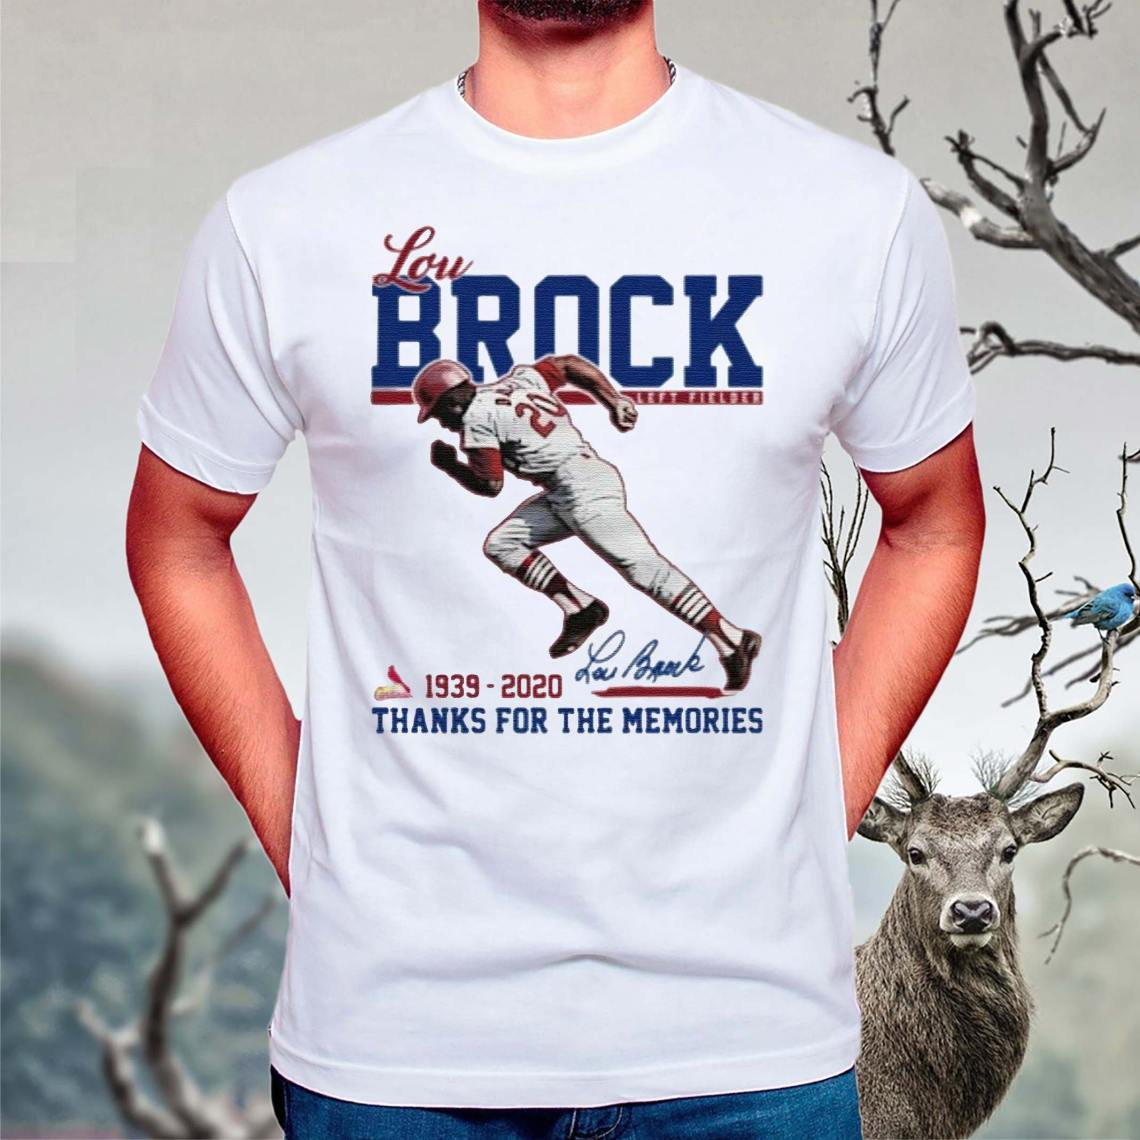 Lou-Brock-Left-Fielder-1939-2020-Thank-You-For-The-Memories-Signature-TShirt